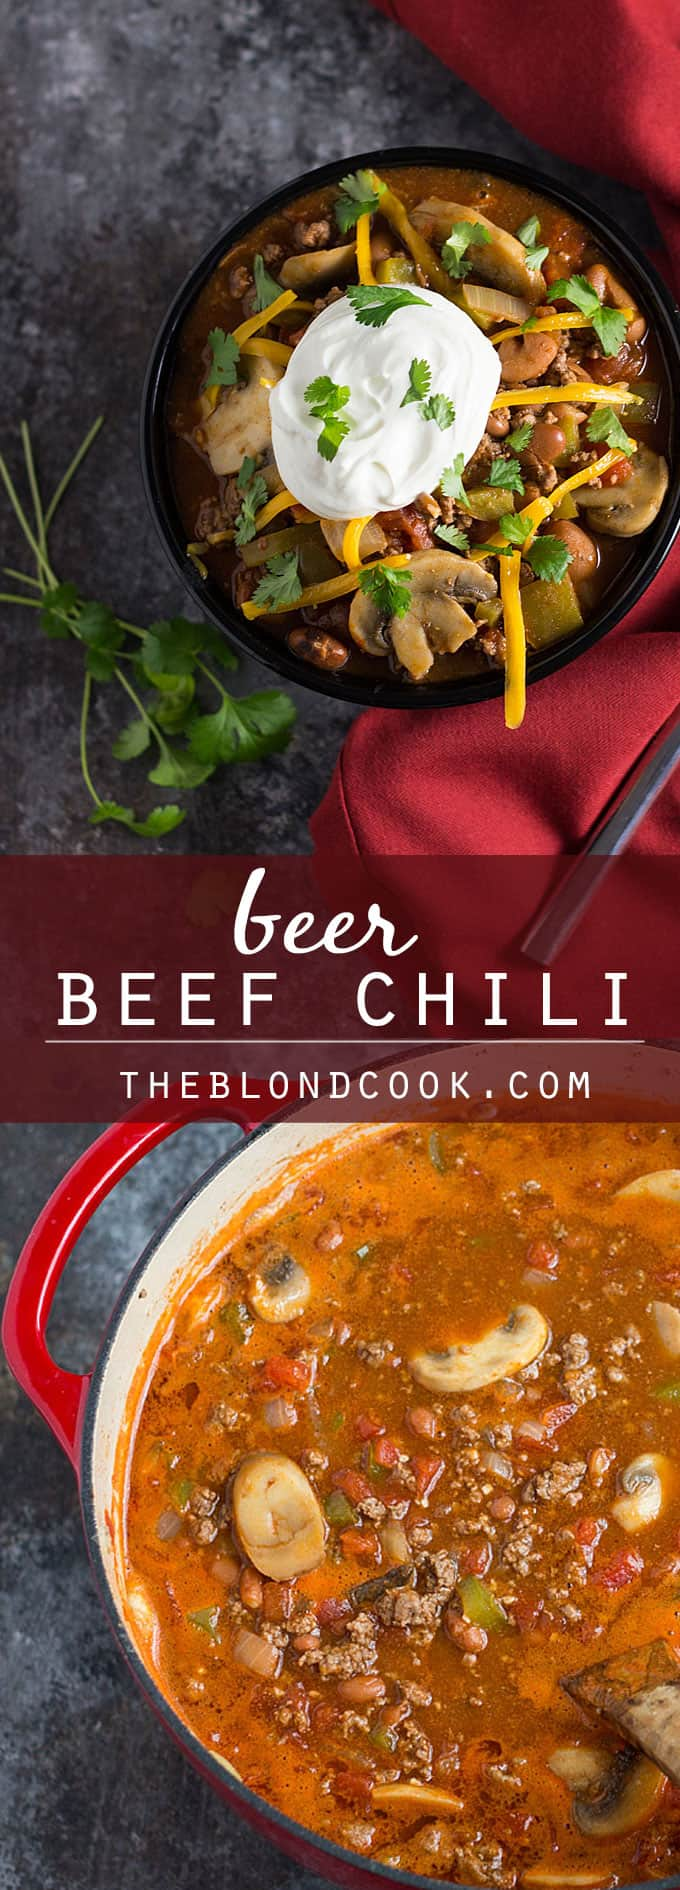 dark beer chili recipe